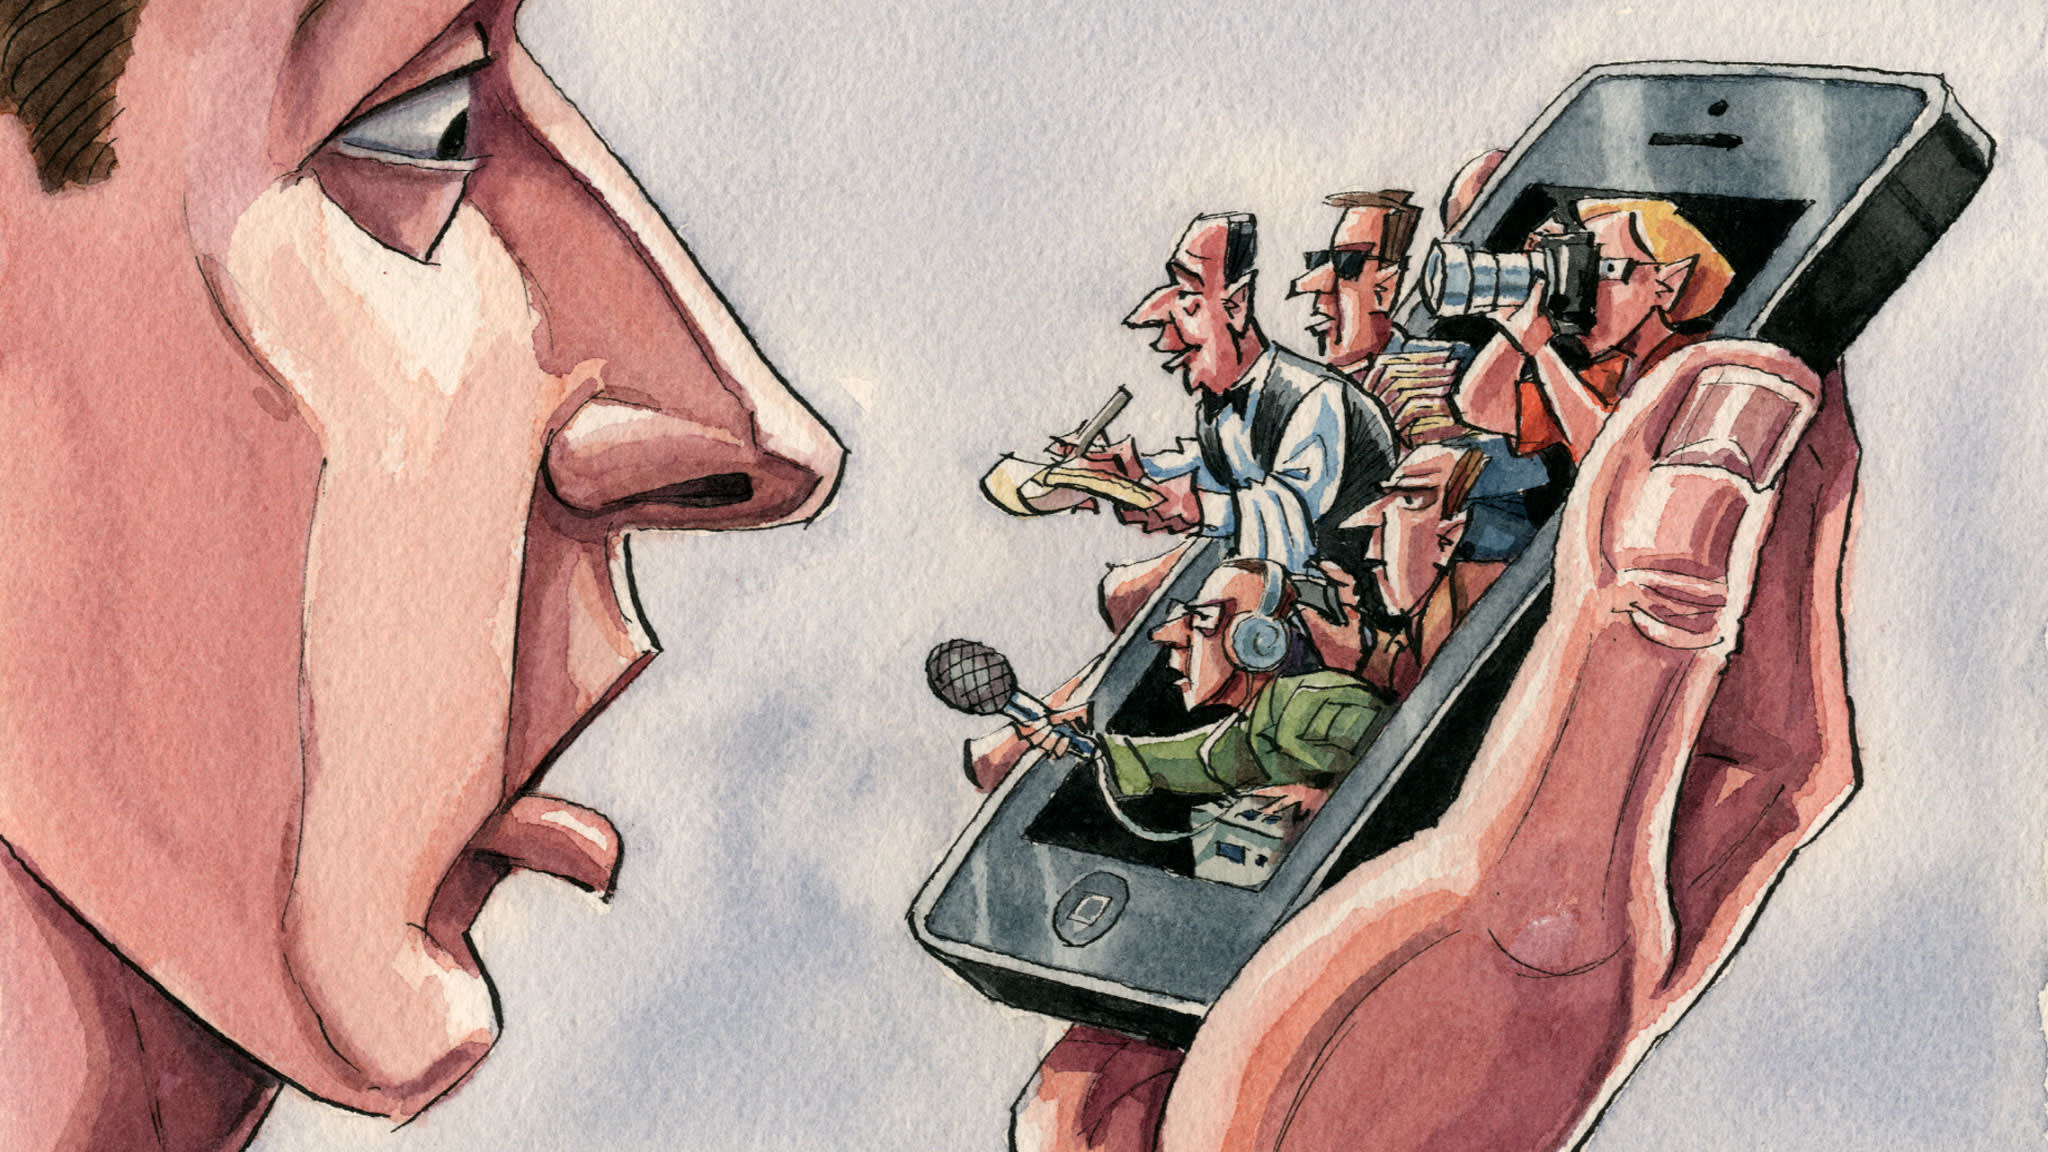 Big data has to show that it's not like Big Brother | Financial Times